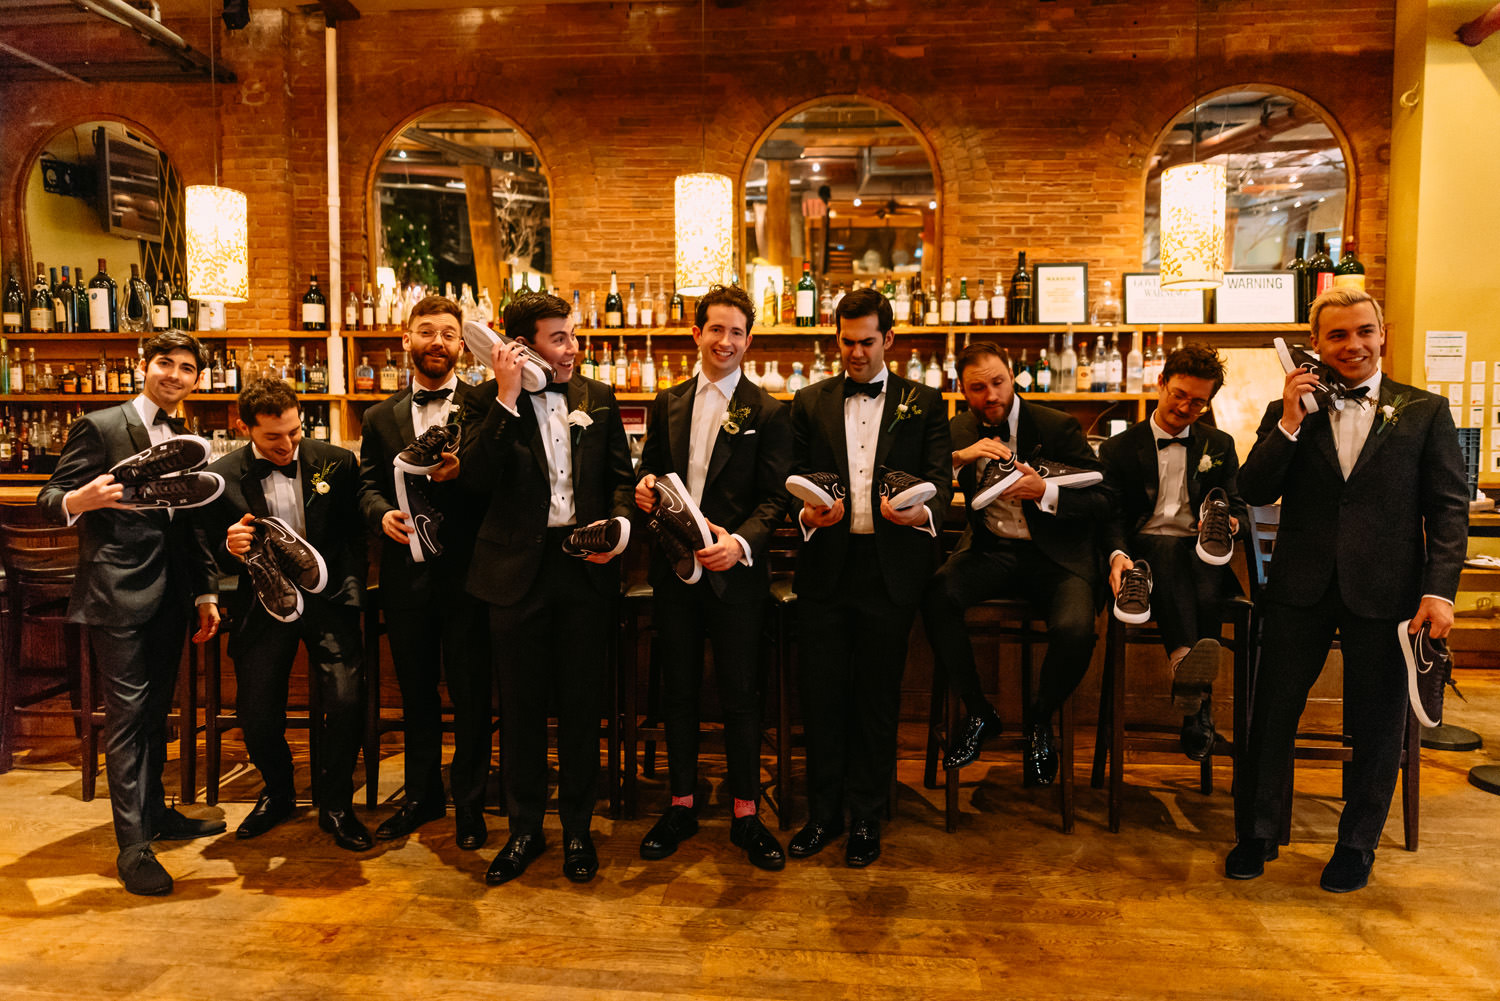 new york city winery wedding- groomsmen ready for the ceremony